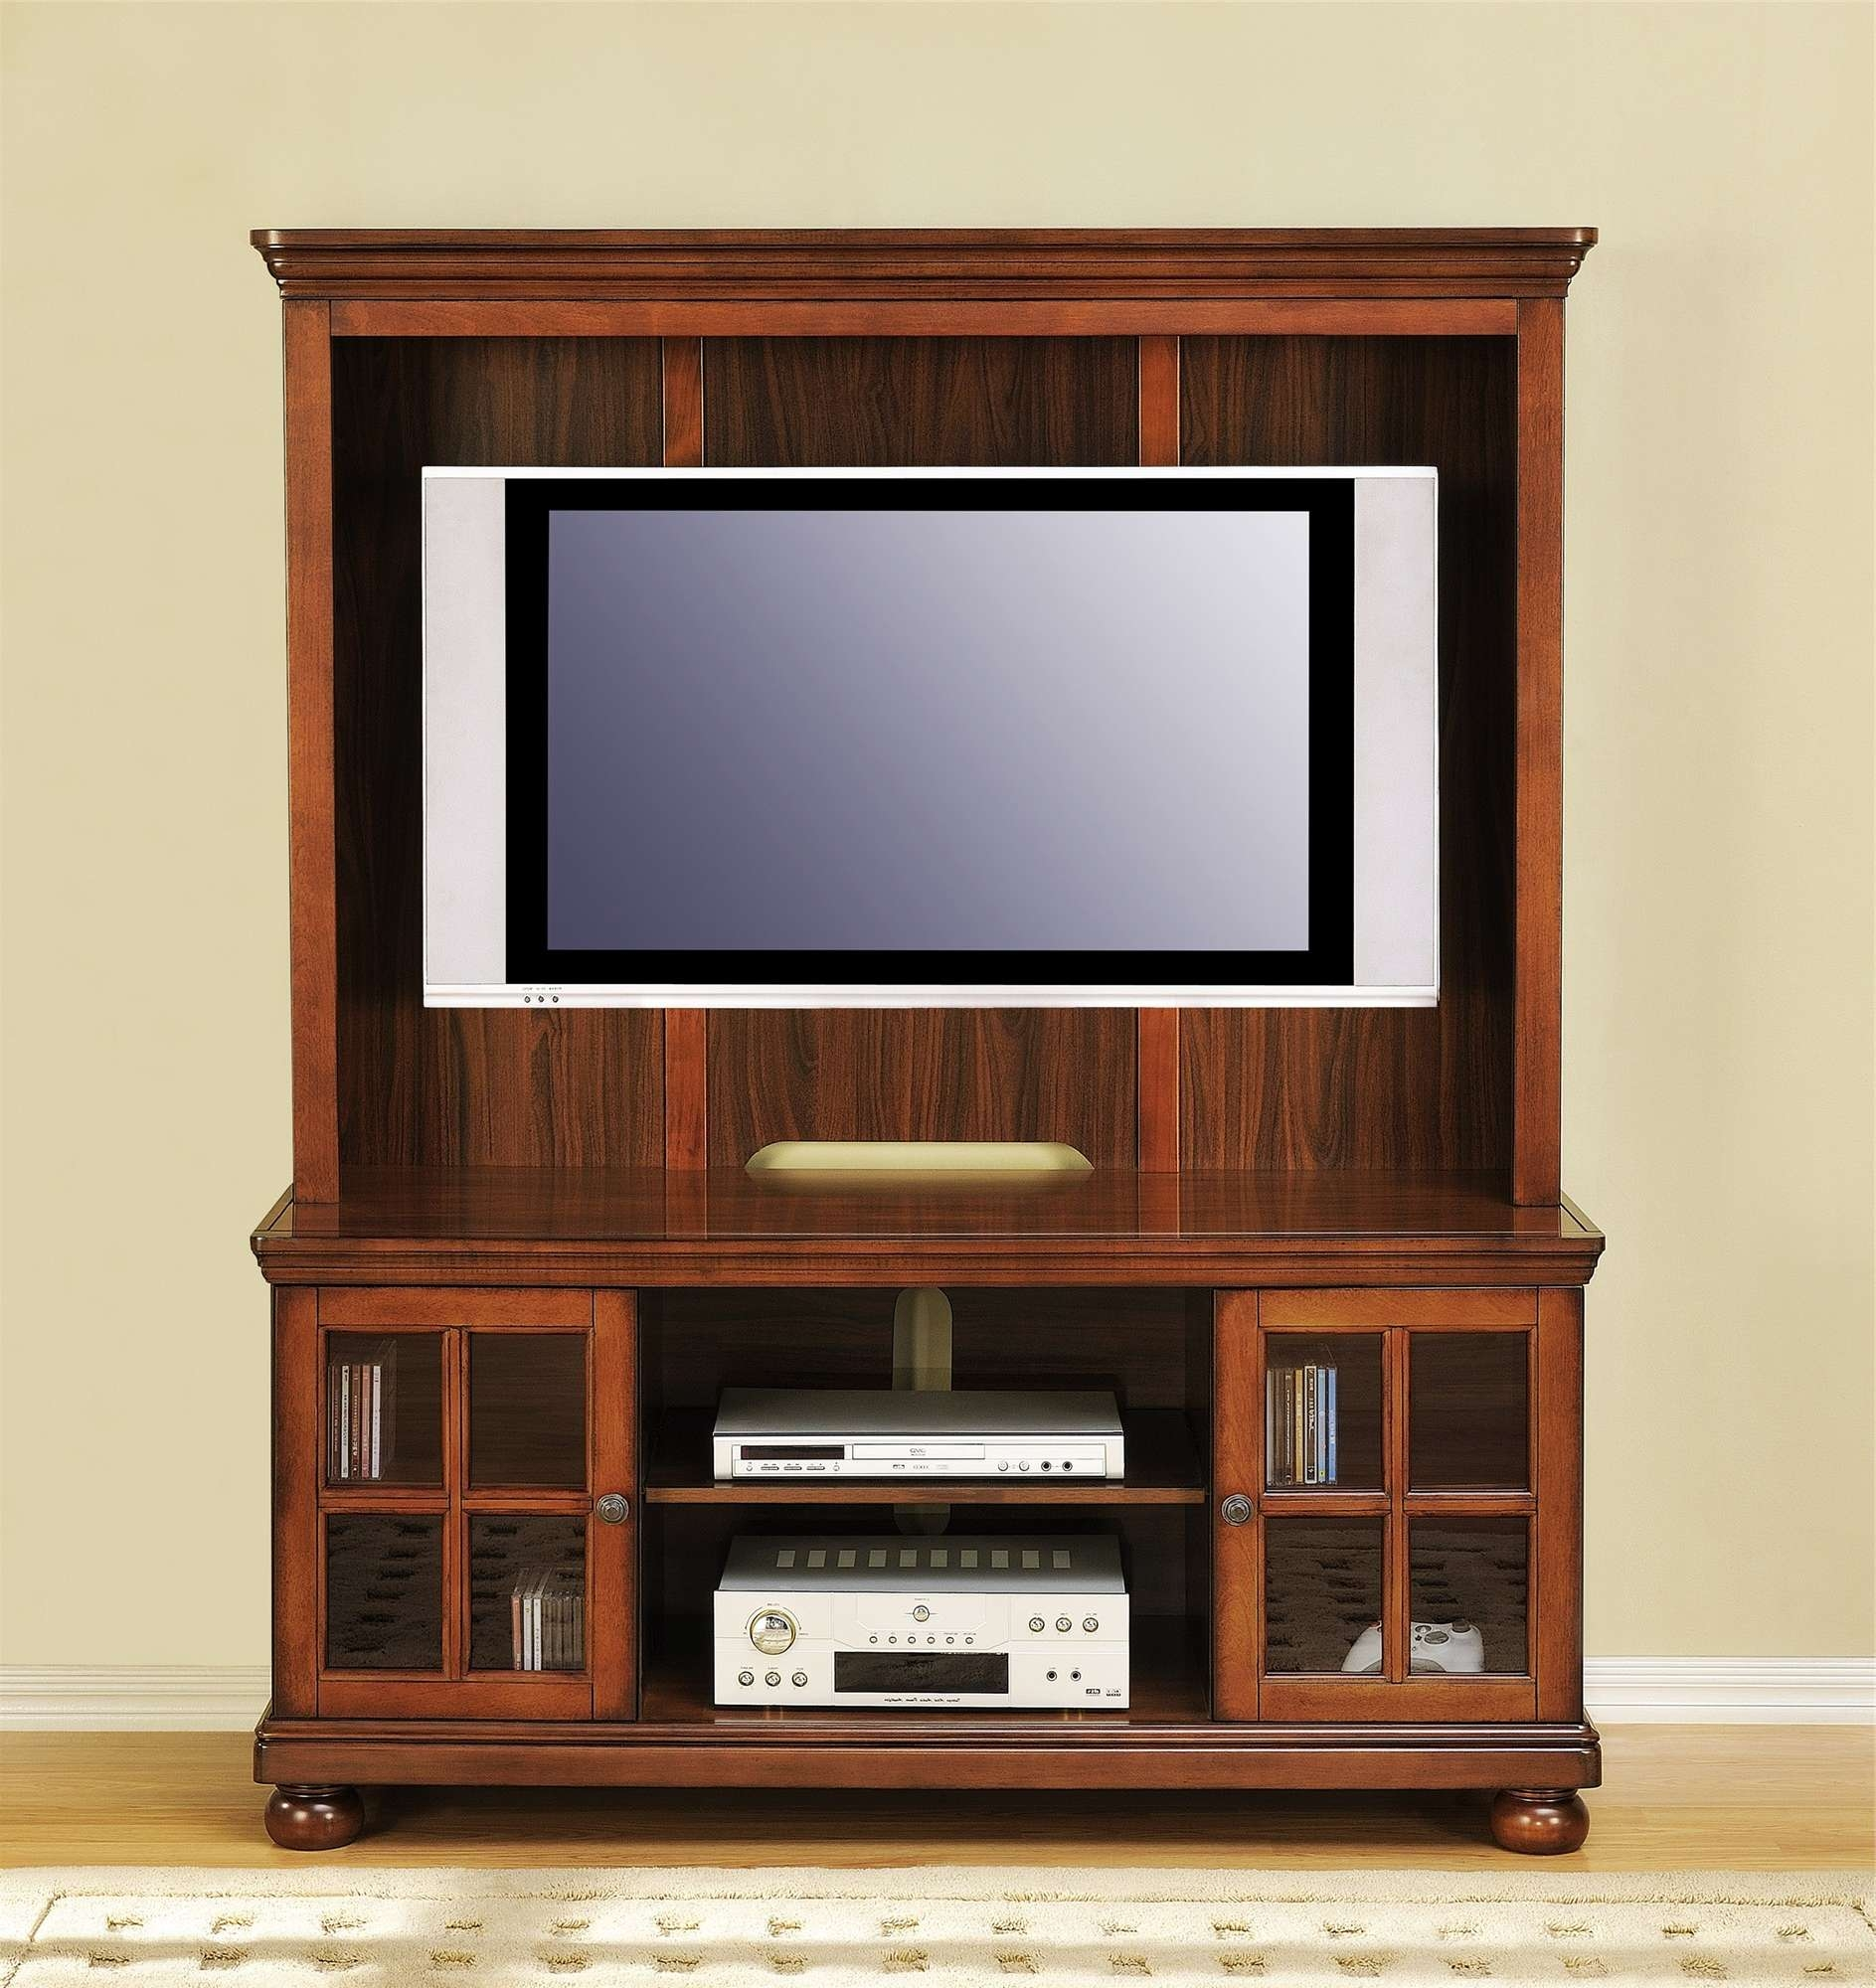 Tall Brown Santos Mahogany Wood Media Cabinet With Mounted Flat Throughout Modern Tv Cabinets For Flat Screens (View 11 of 20)